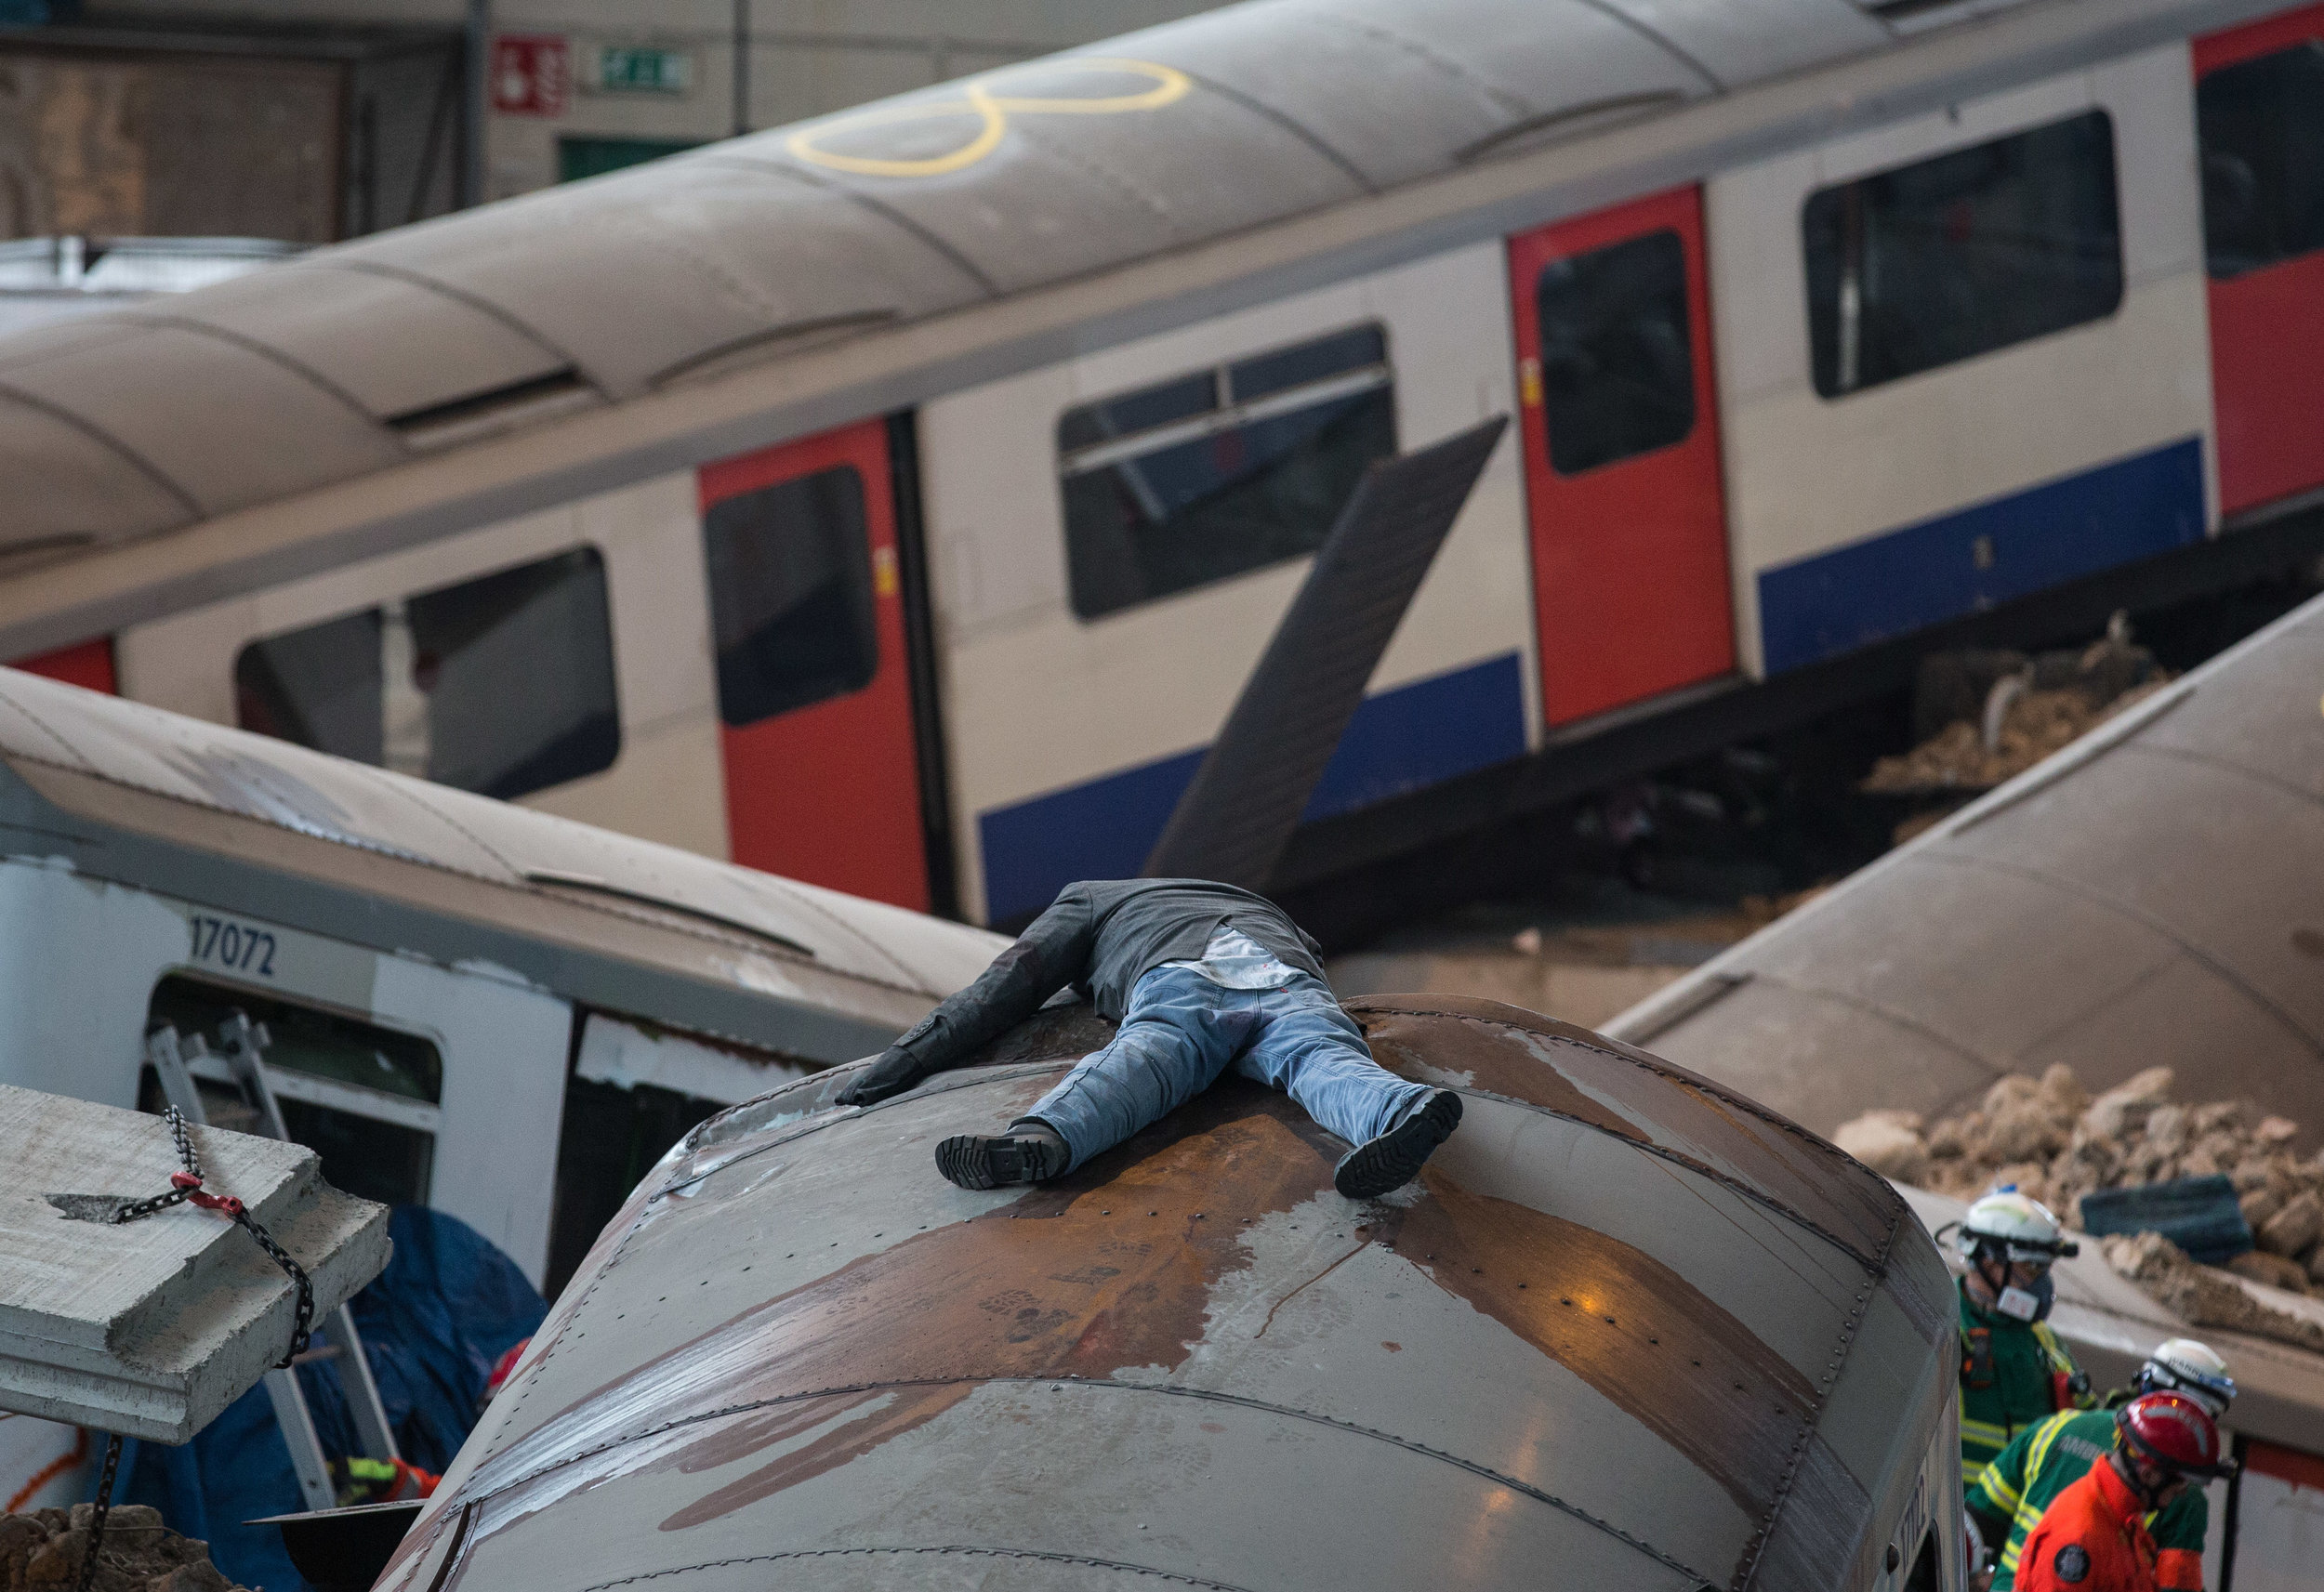 A blood splatted mannequin on top of a destroyed London Underground train carriage